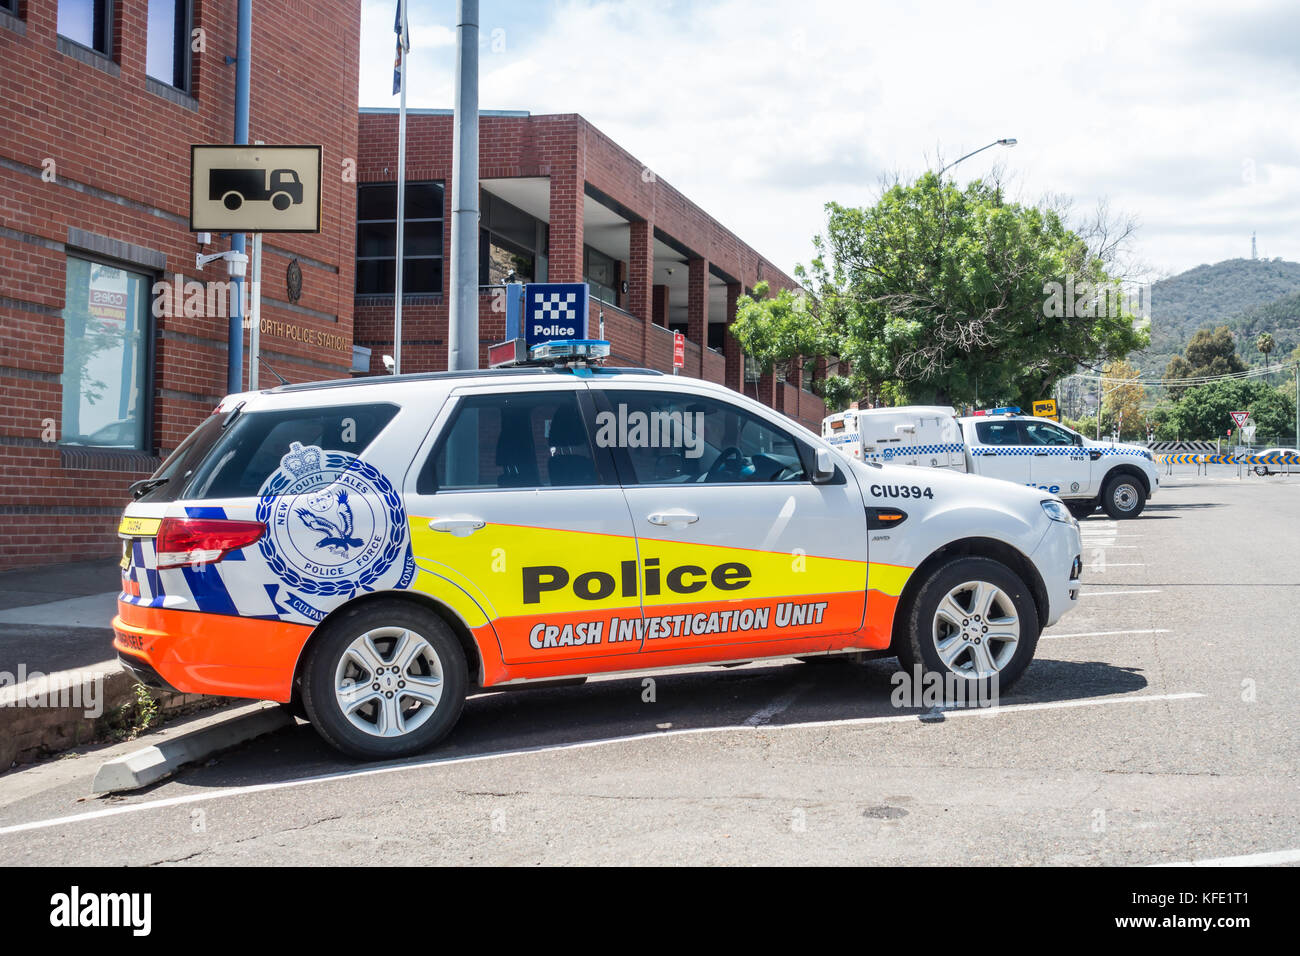 New South Wales Police Crash Investigate Unit vehicle parked at police station Tamworth Australia. - Stock Image